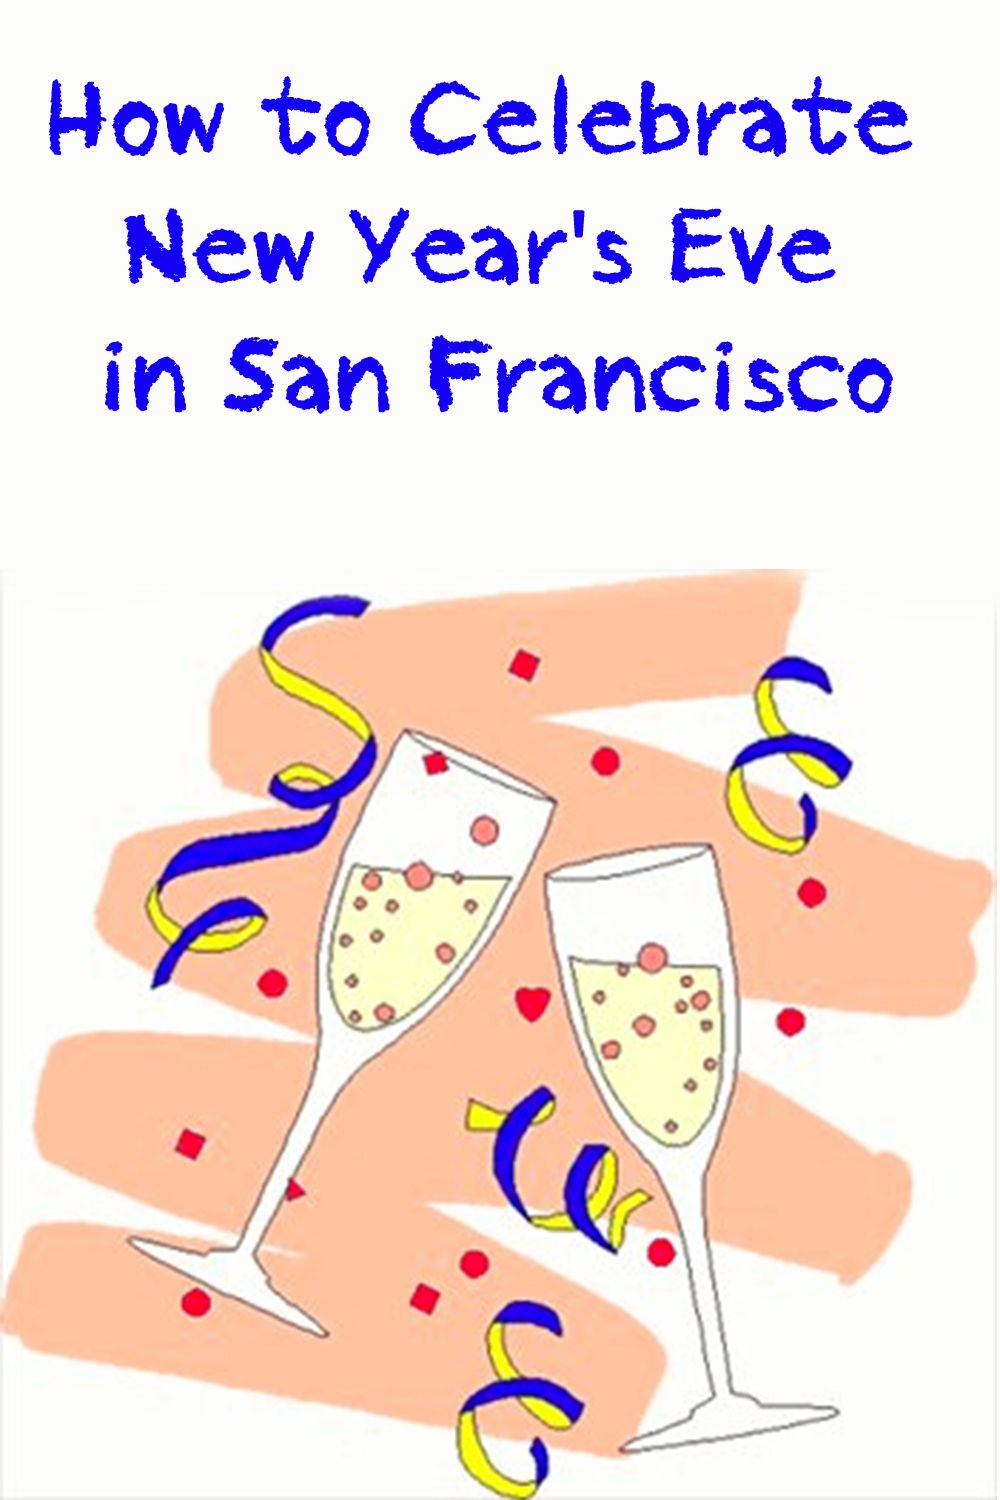 How to Celebrate New Year's Eve in San Francisco New